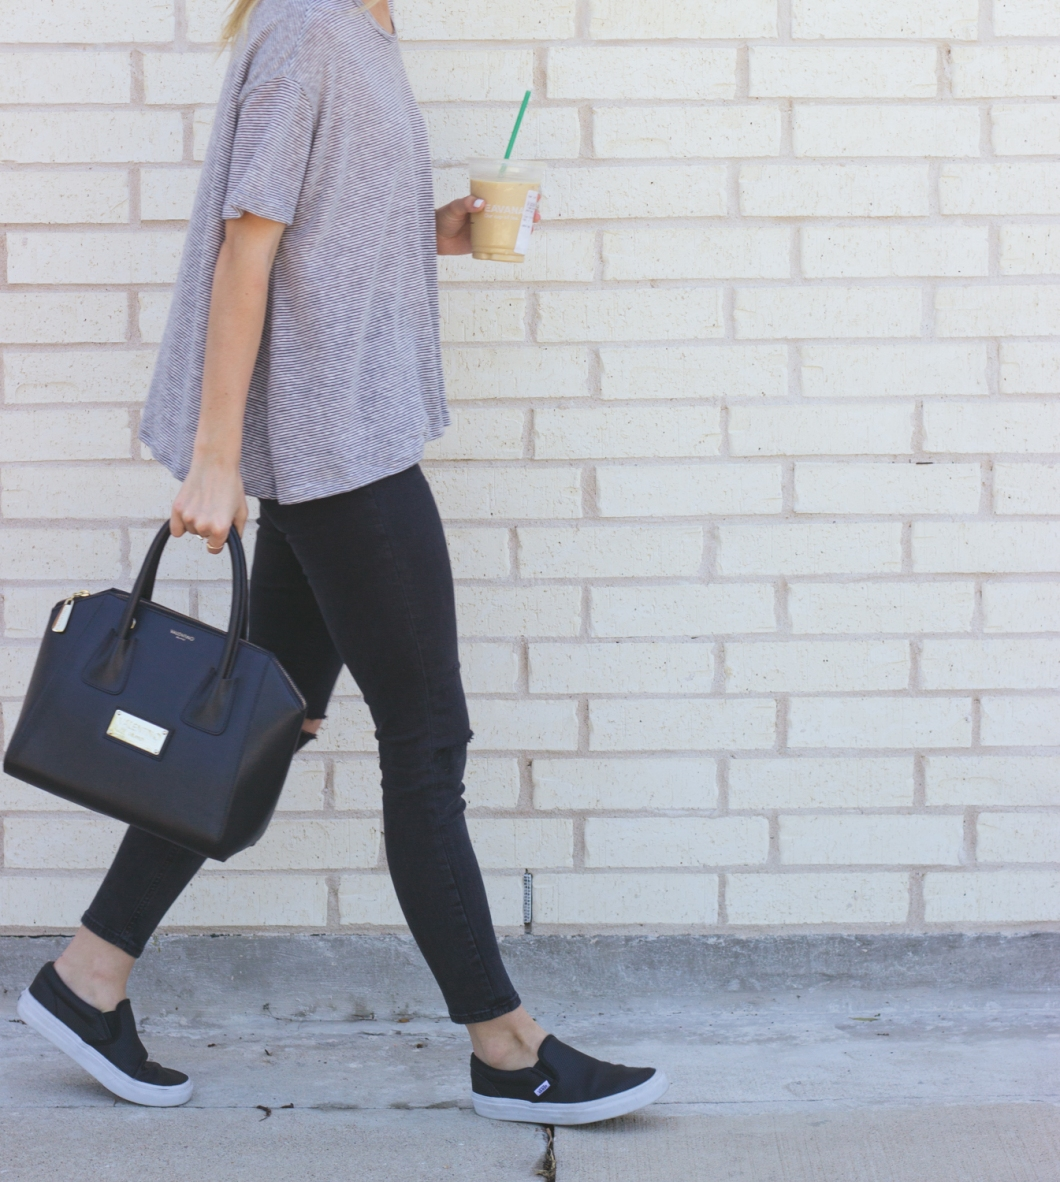 livvyland-blog-olivia-watson-austin-texas-fashion-blogger-iced-coffee-trendy-hipster-striped-shirt-vans-black-slip-on-leather-sneakers-summer-spring-outfit-casual-topshop-jamie-black-jea